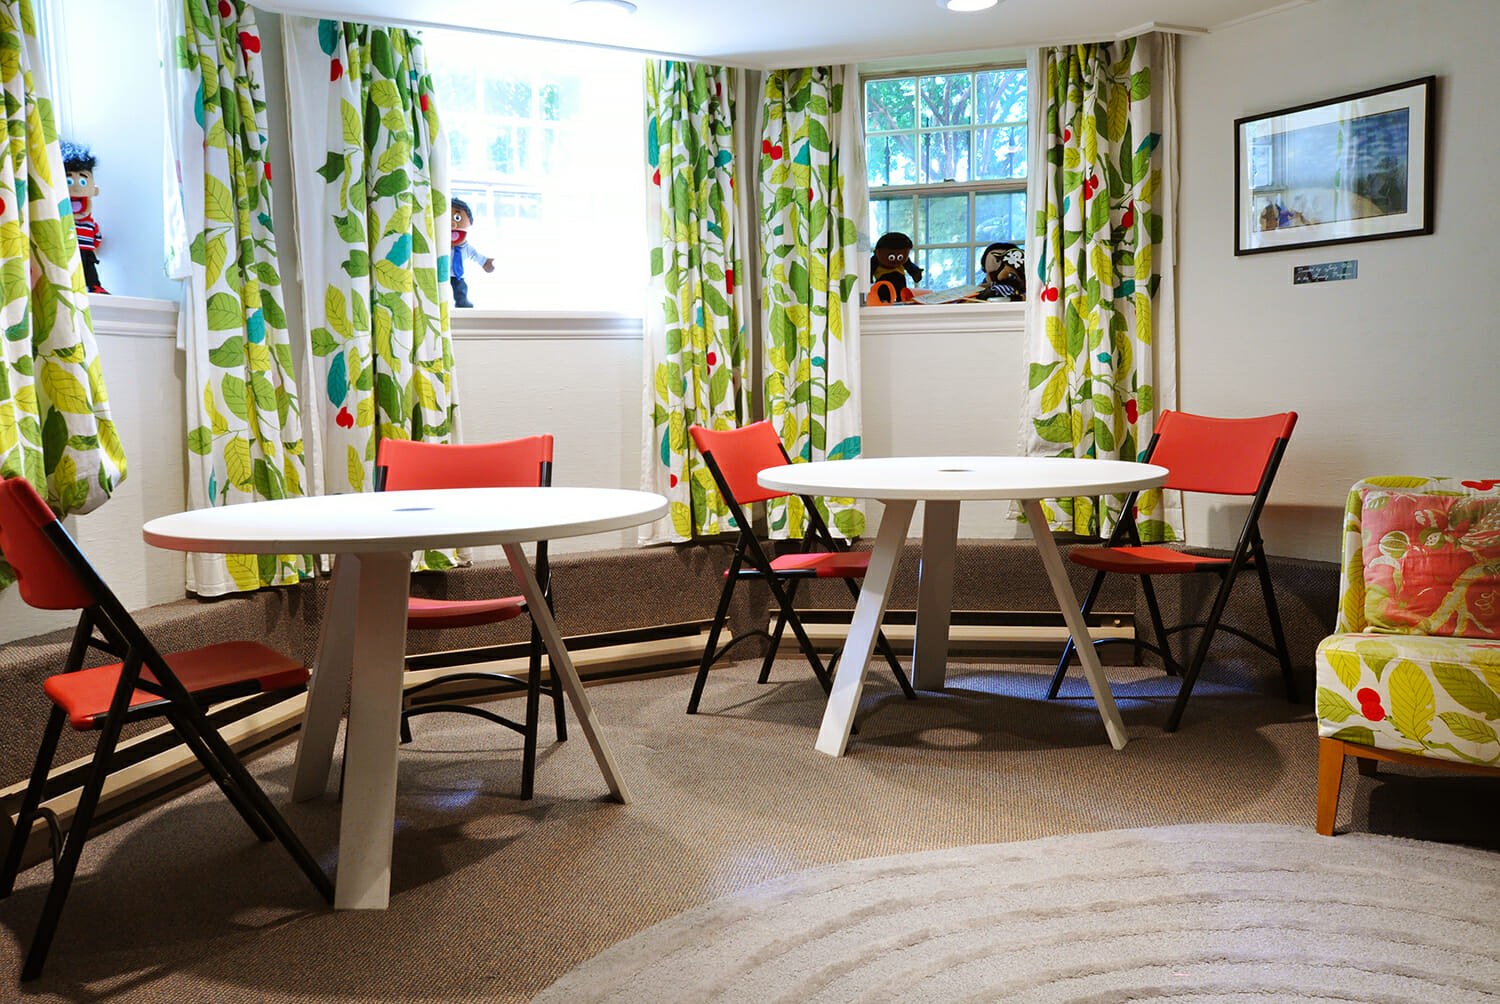 Tables and chairs at Wright Centre Family Care room.